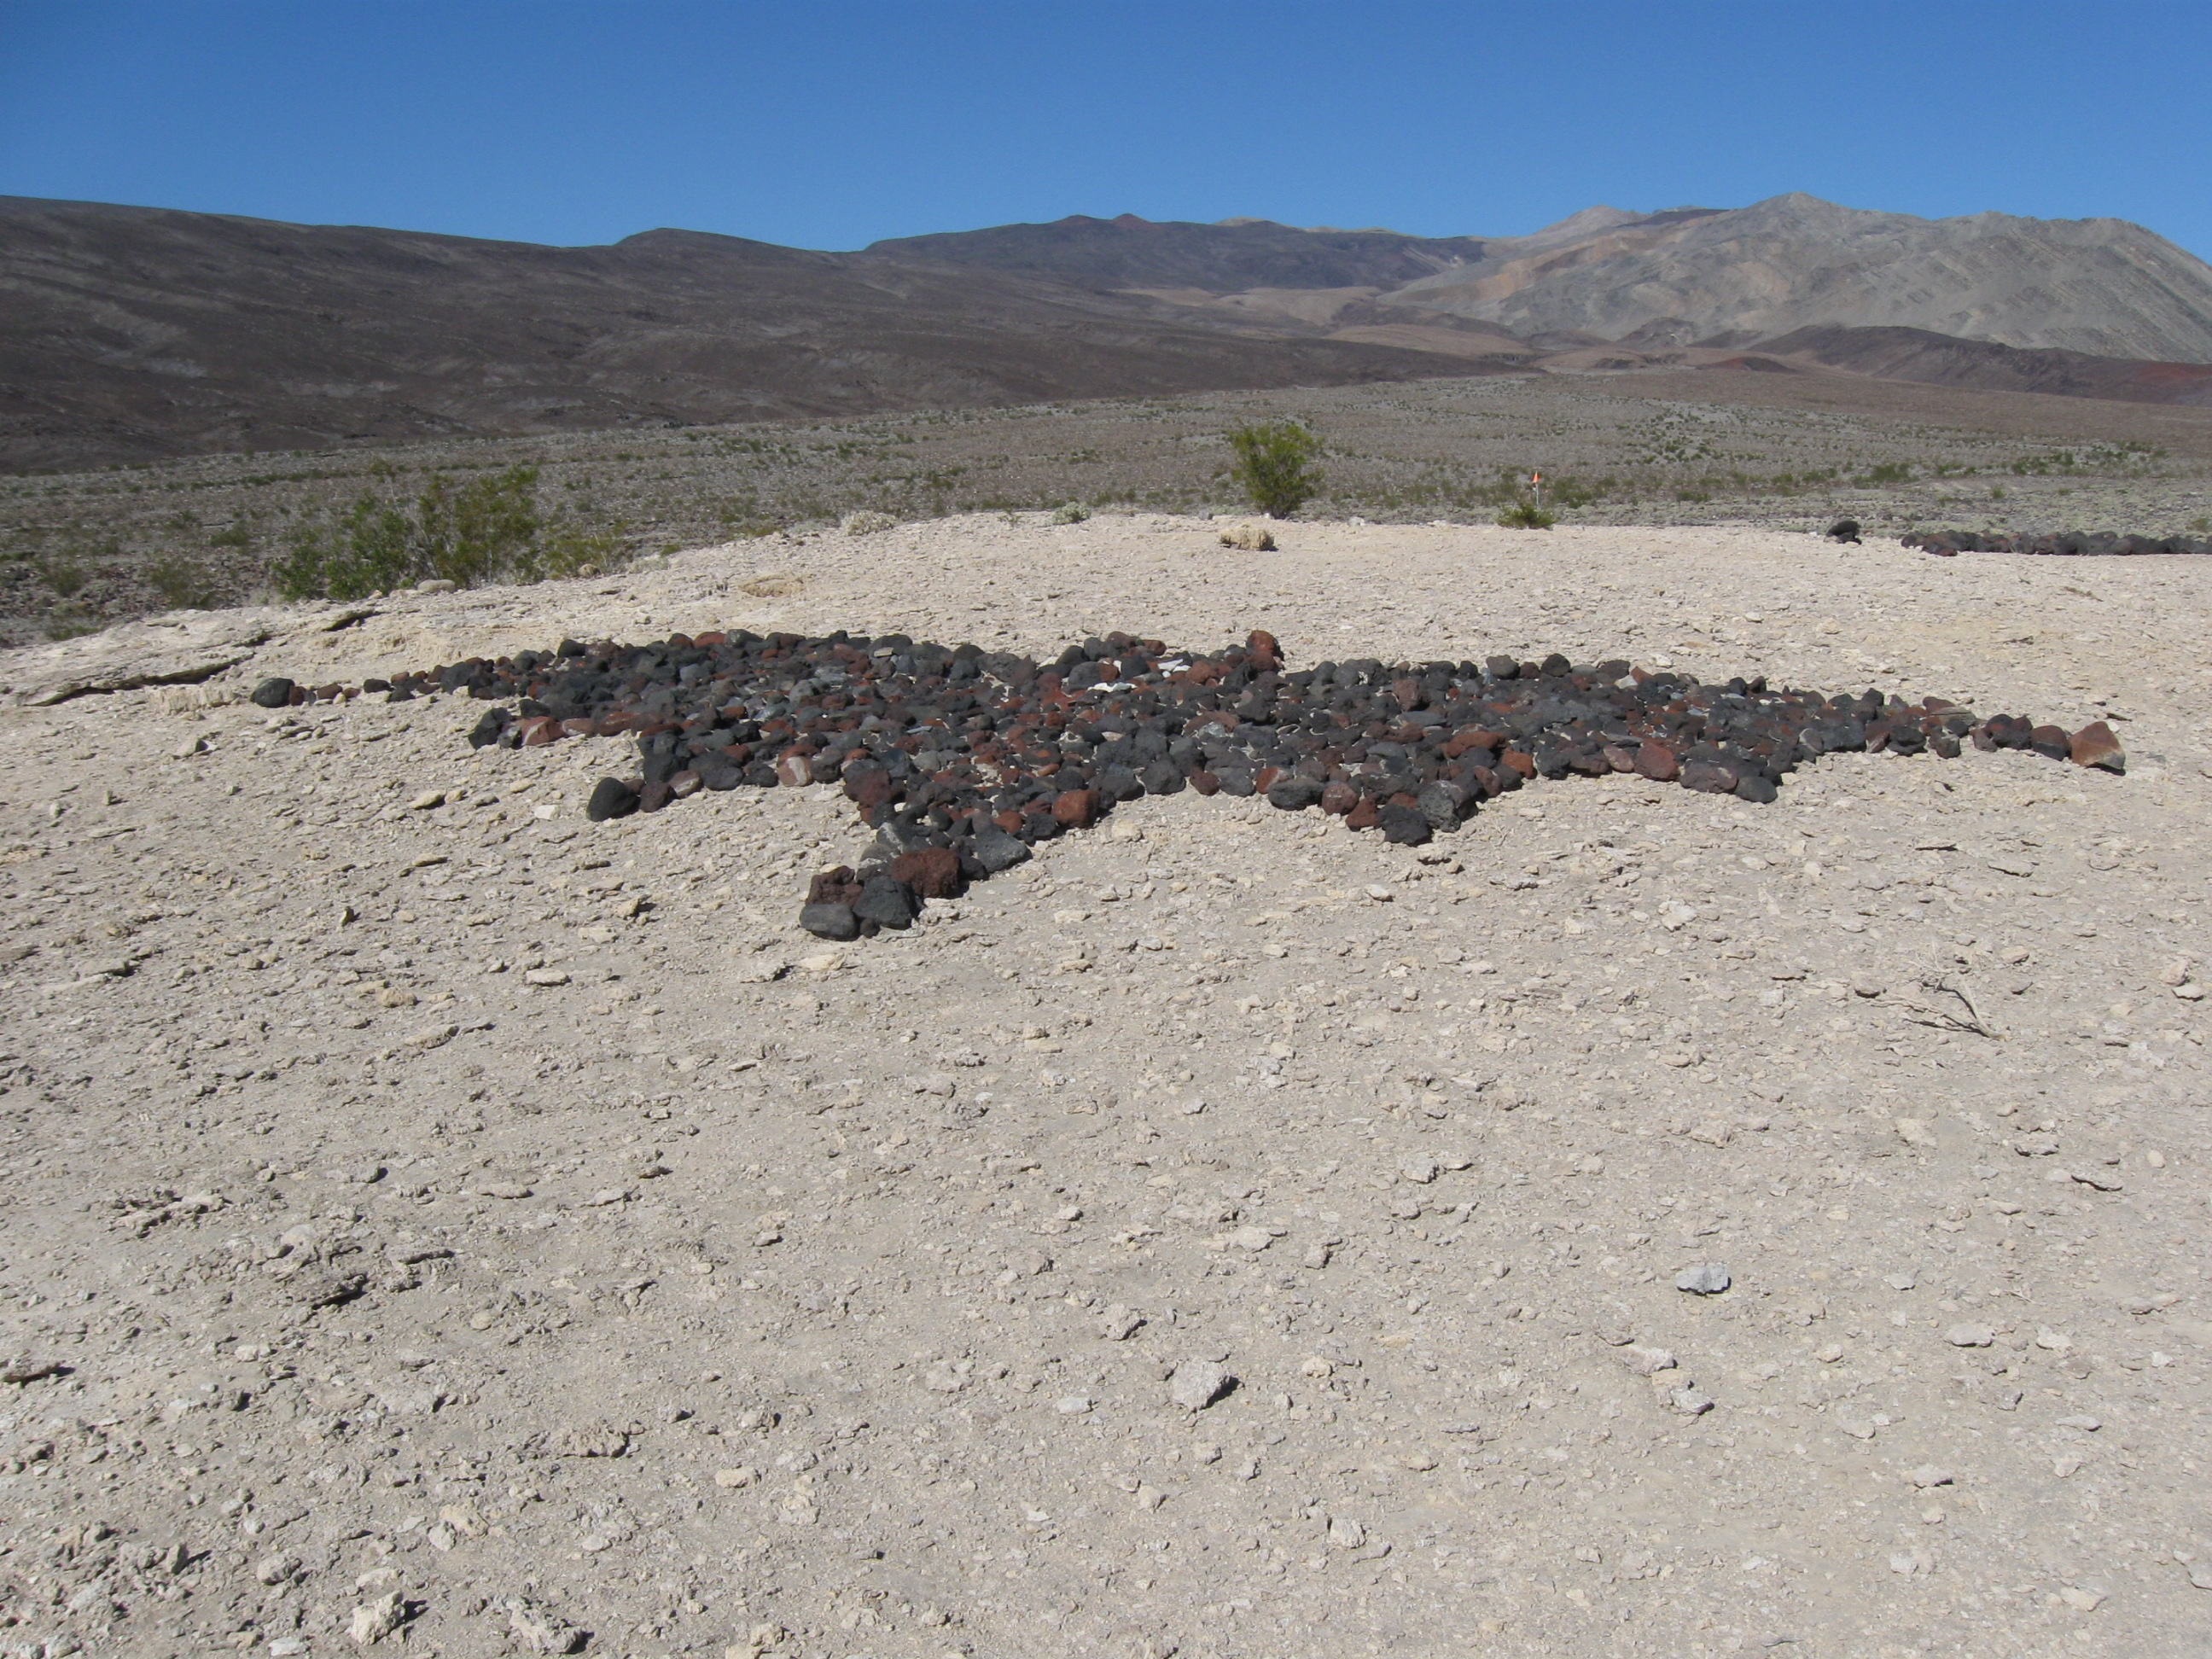 Dark rocks have been placed in the shape of a flying bat on the ground near Saline Valley Warm Springs.